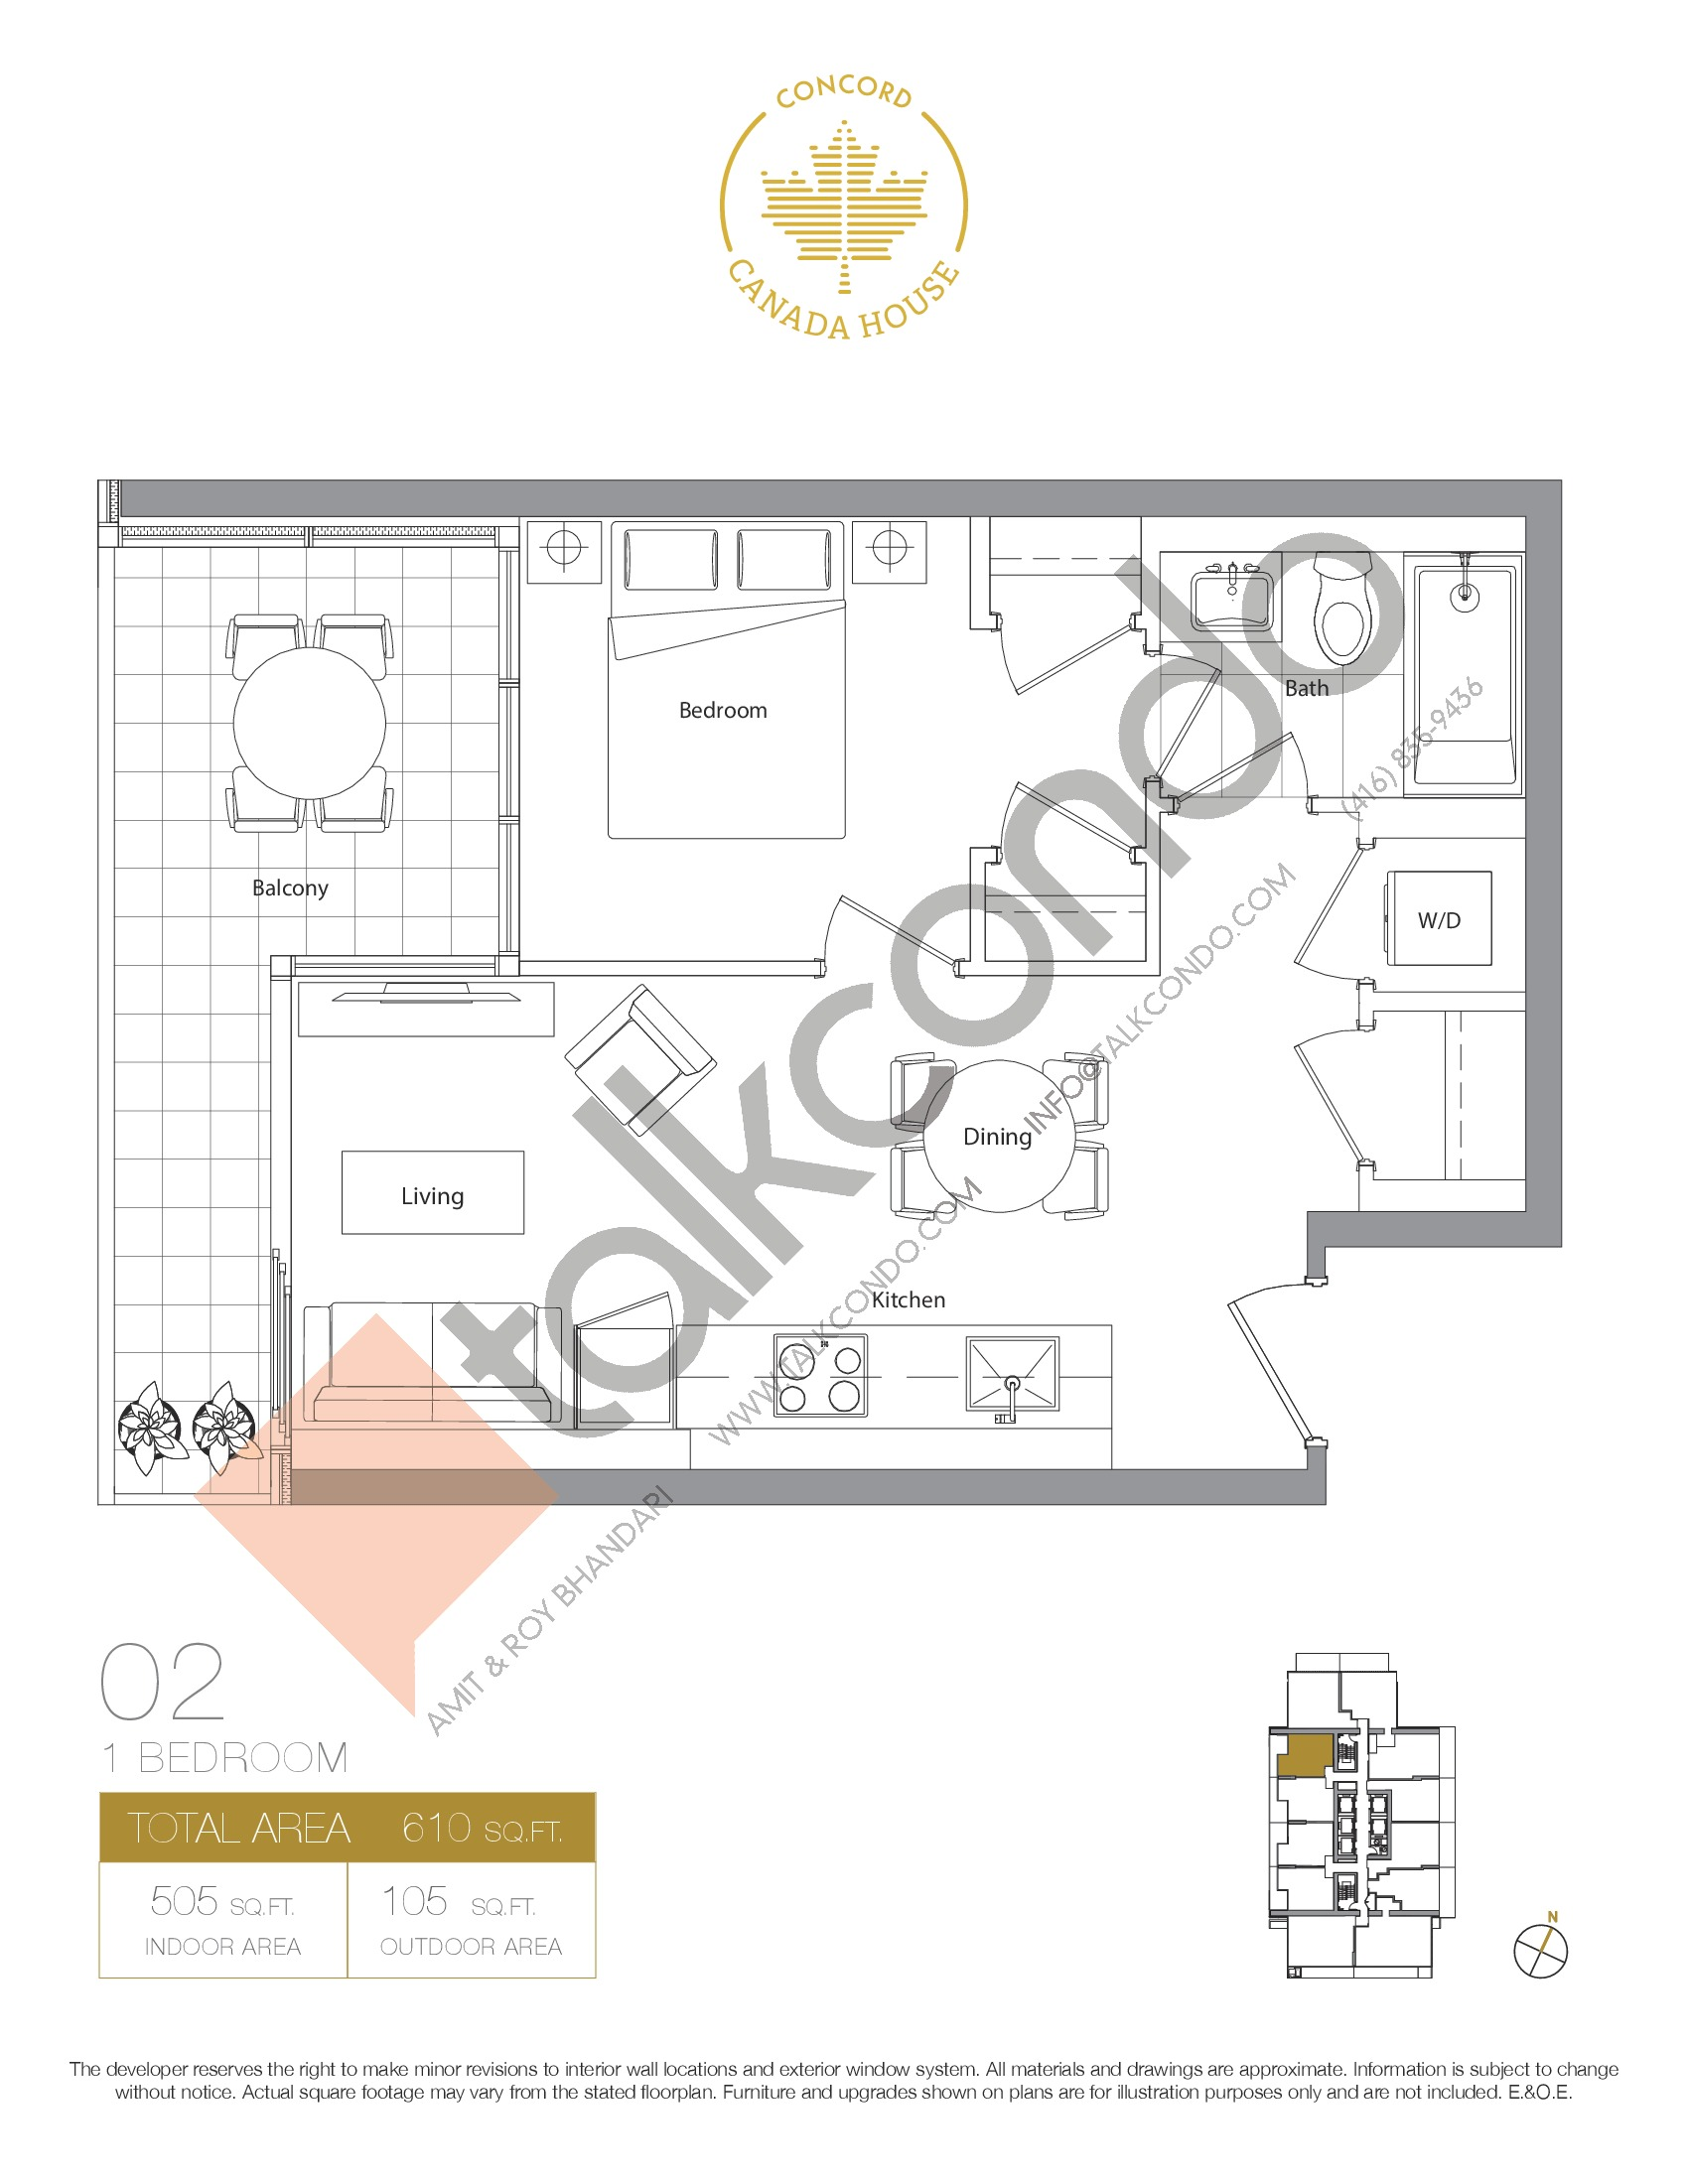 02 - West Tower Floor Plan at Concord Canada House Condos - 505 sq.ft